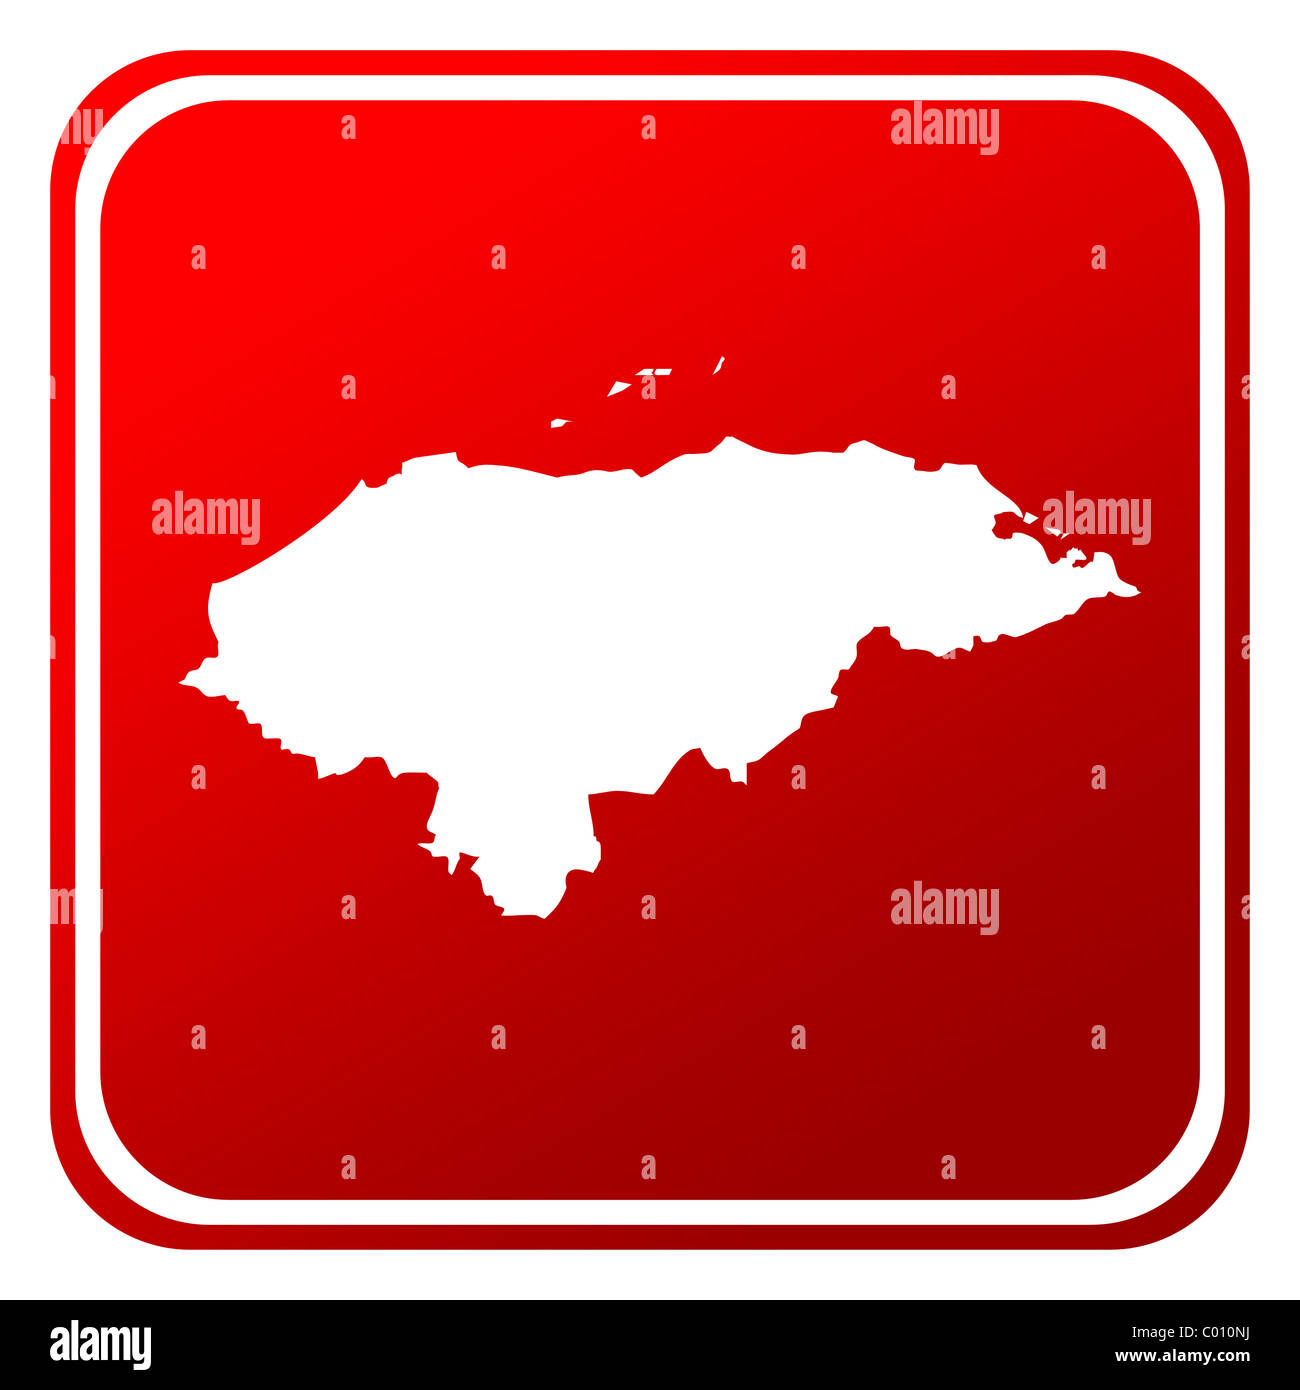 Honduras red map button isolated on white background. Stock Photo